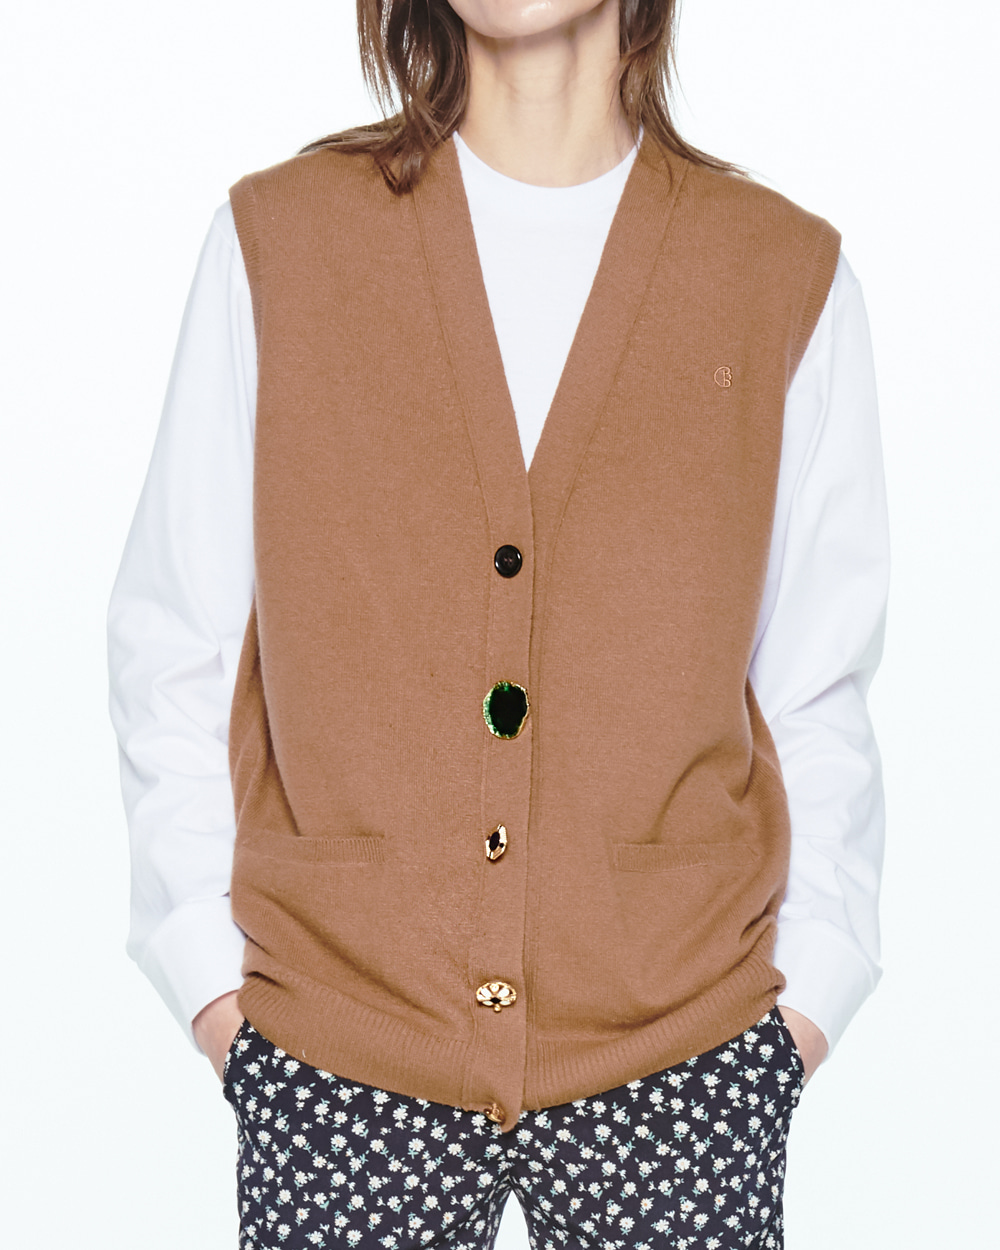 PF20 FESTIVAL BUTTONS POINT KNIT VEST